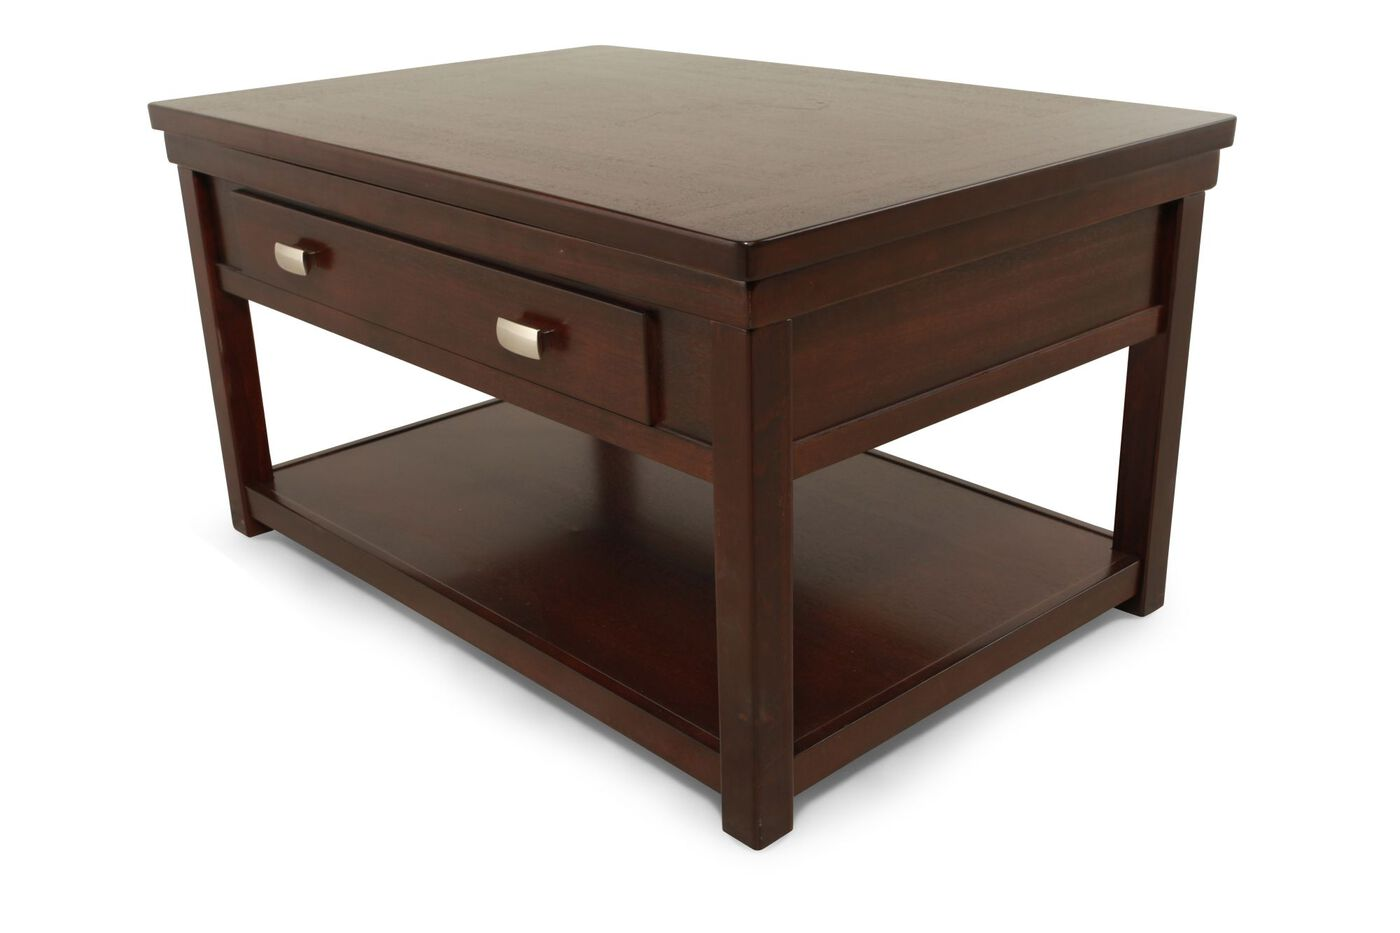 Lift top cocktail table ashley furniture -  Ashley Hatsuko Lift Top Cocktail Table